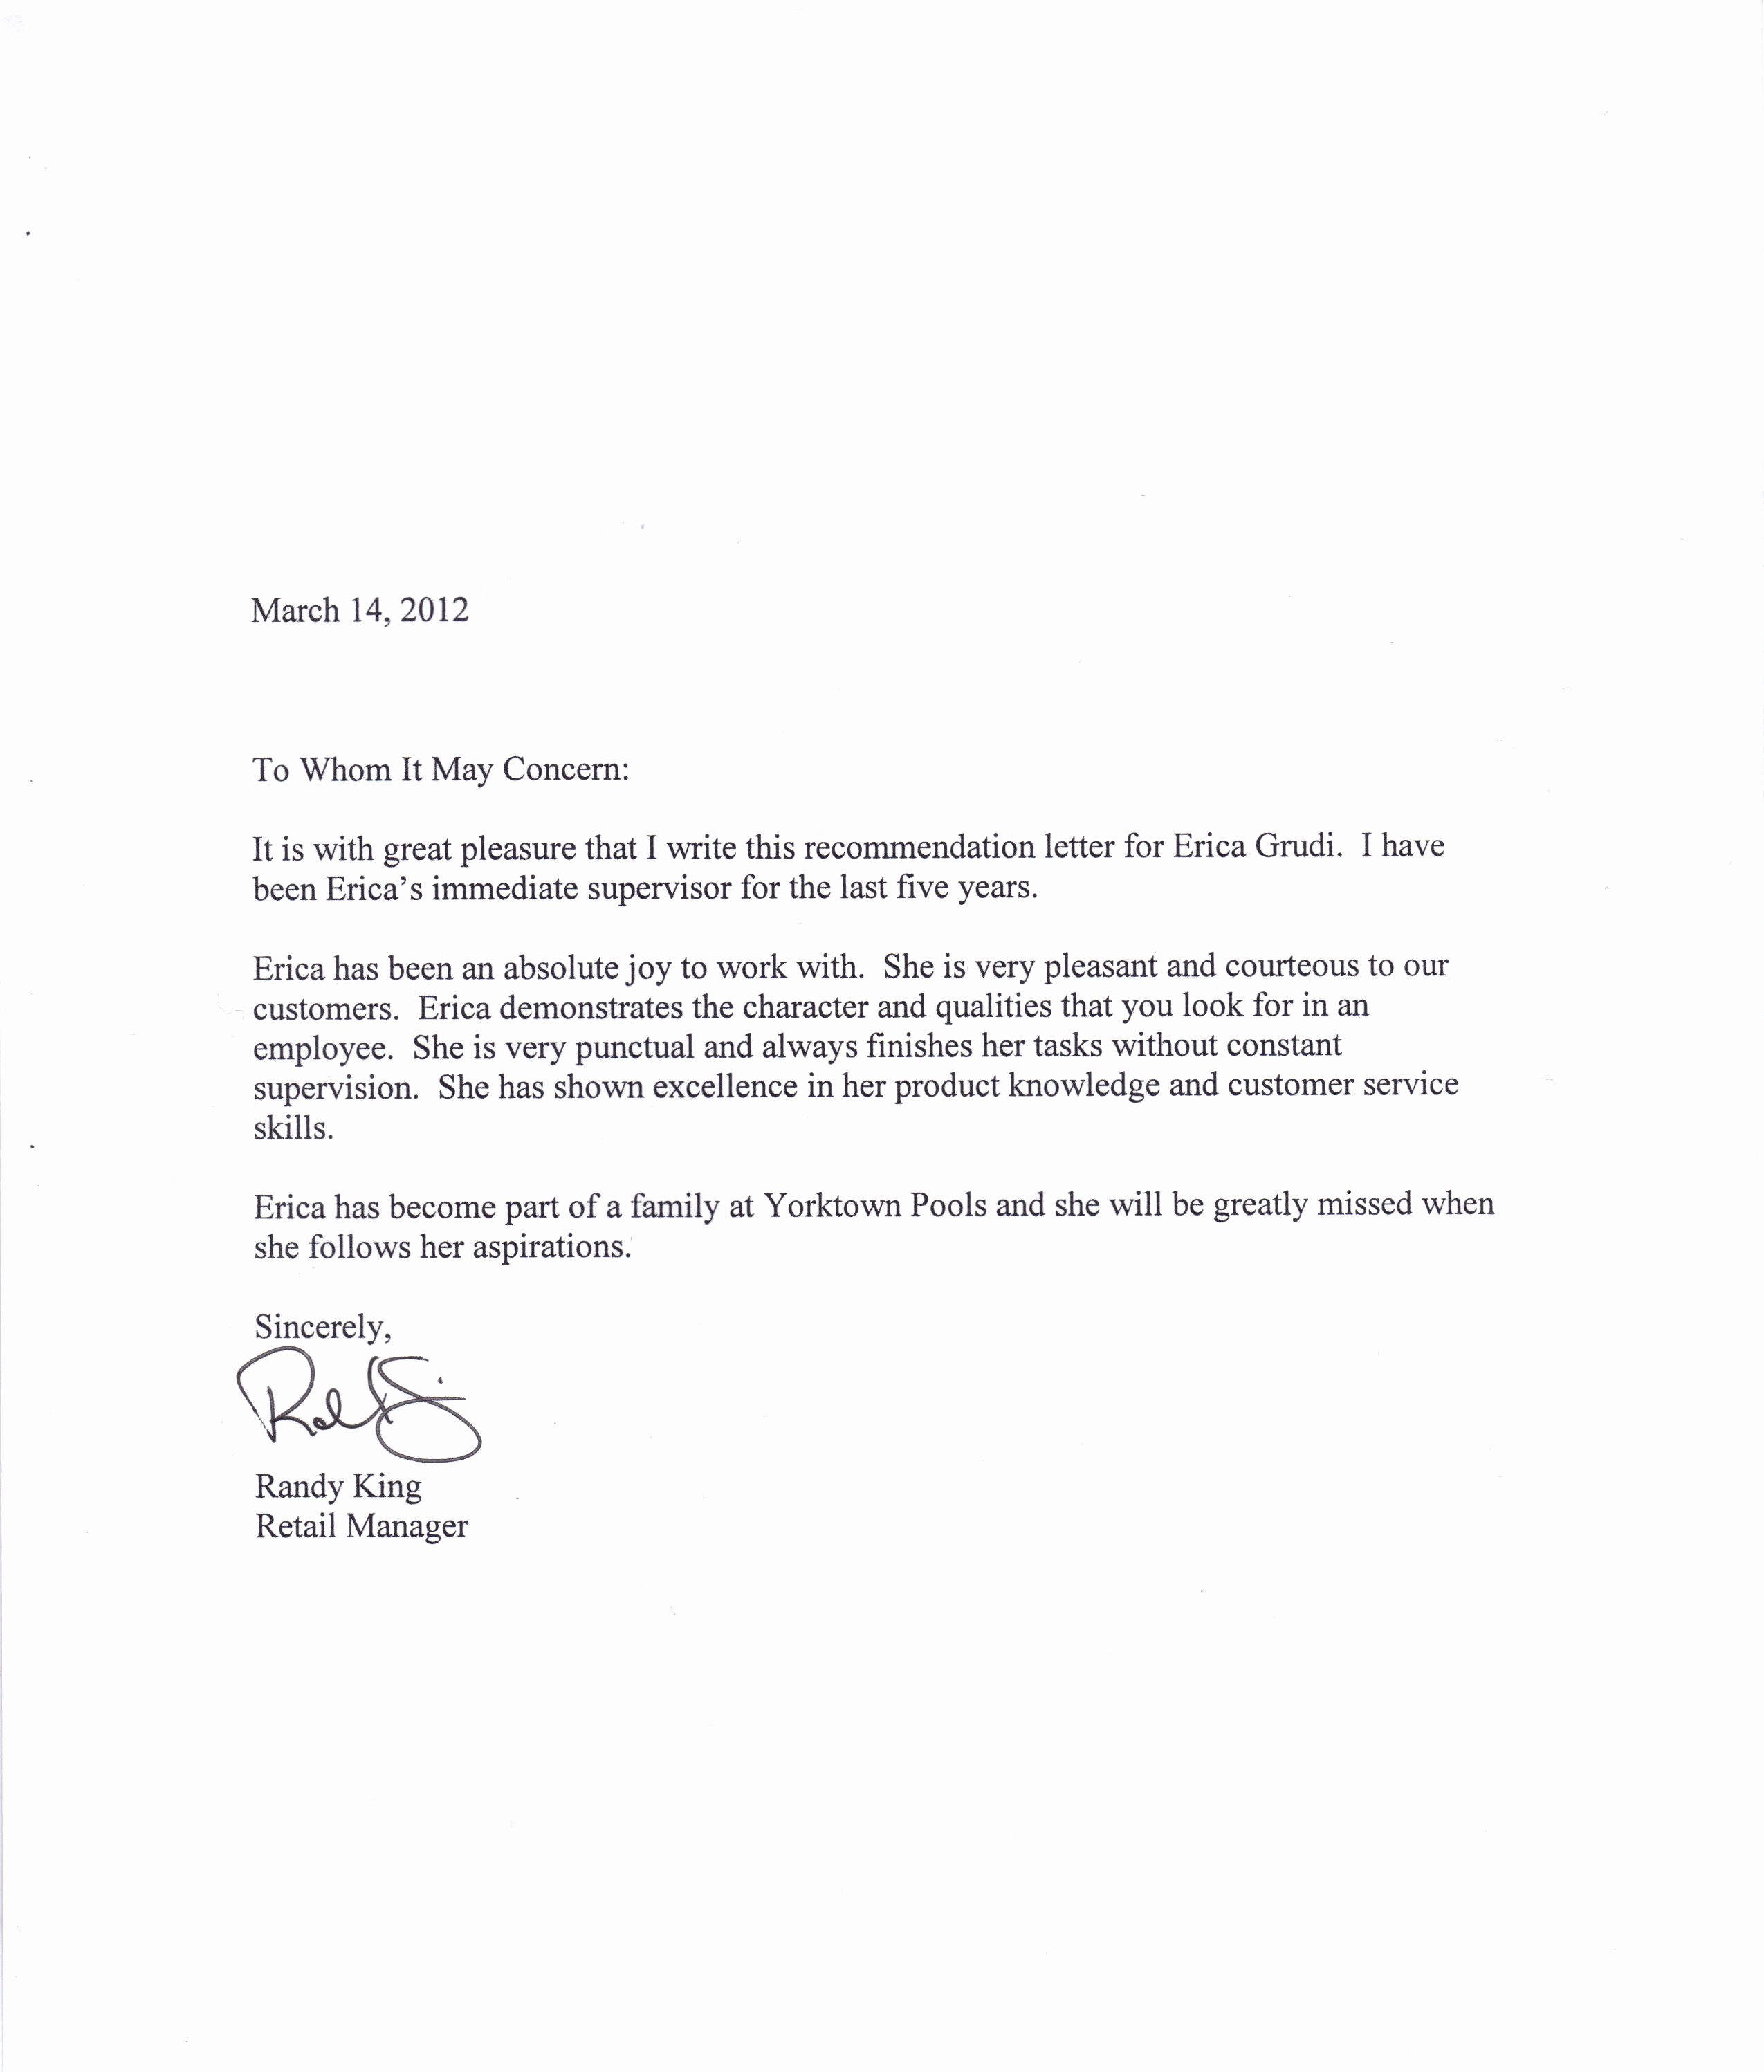 Letter Of Recommendation with Letterhead Inspirational Tips for Writing A Letter Of Re Mendation